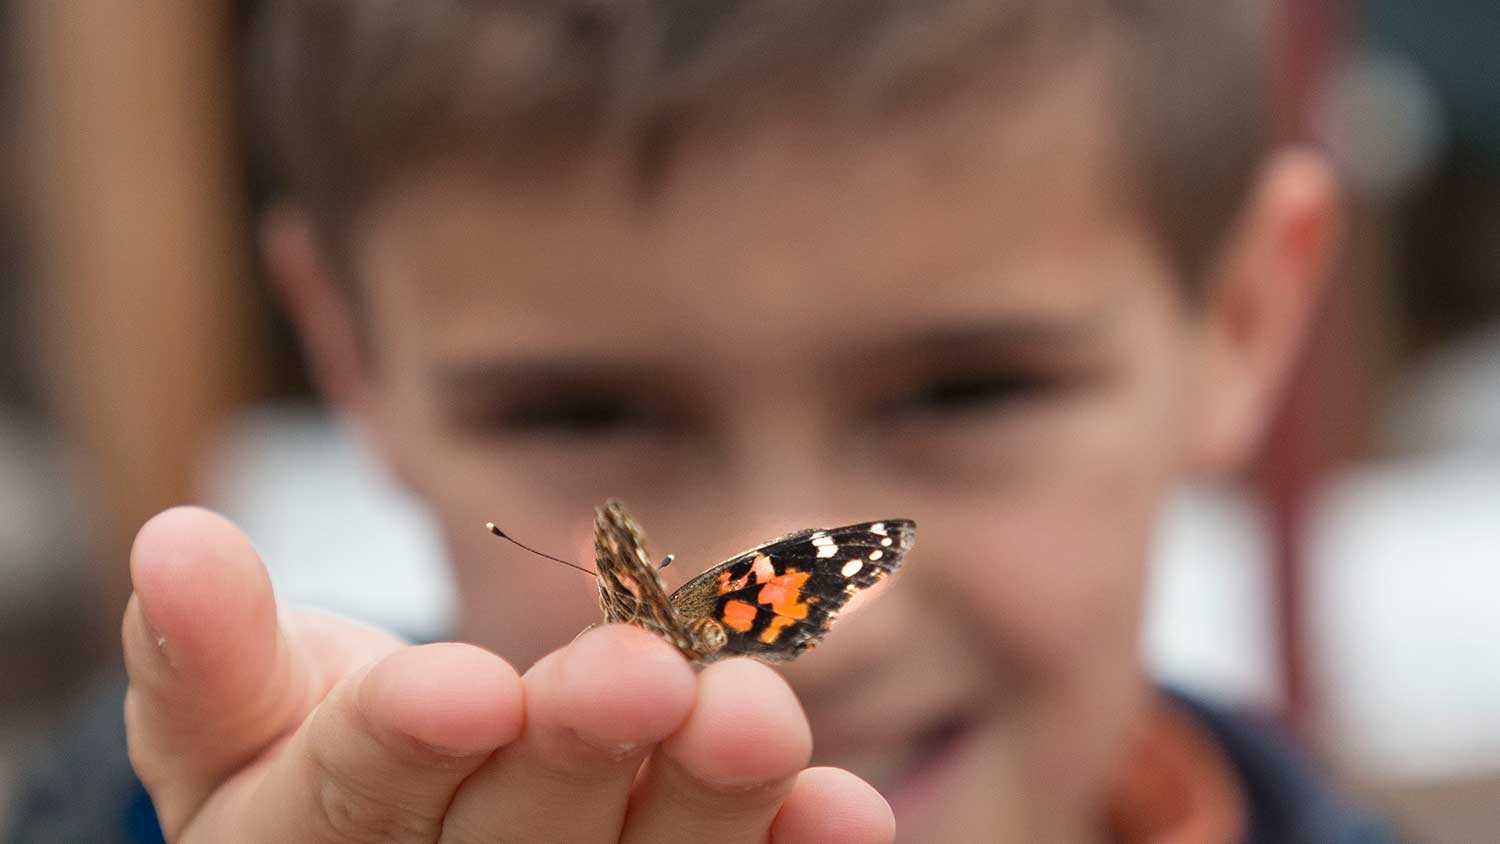 Young boy extending open hand towards camera, a buterfly posing on fingers